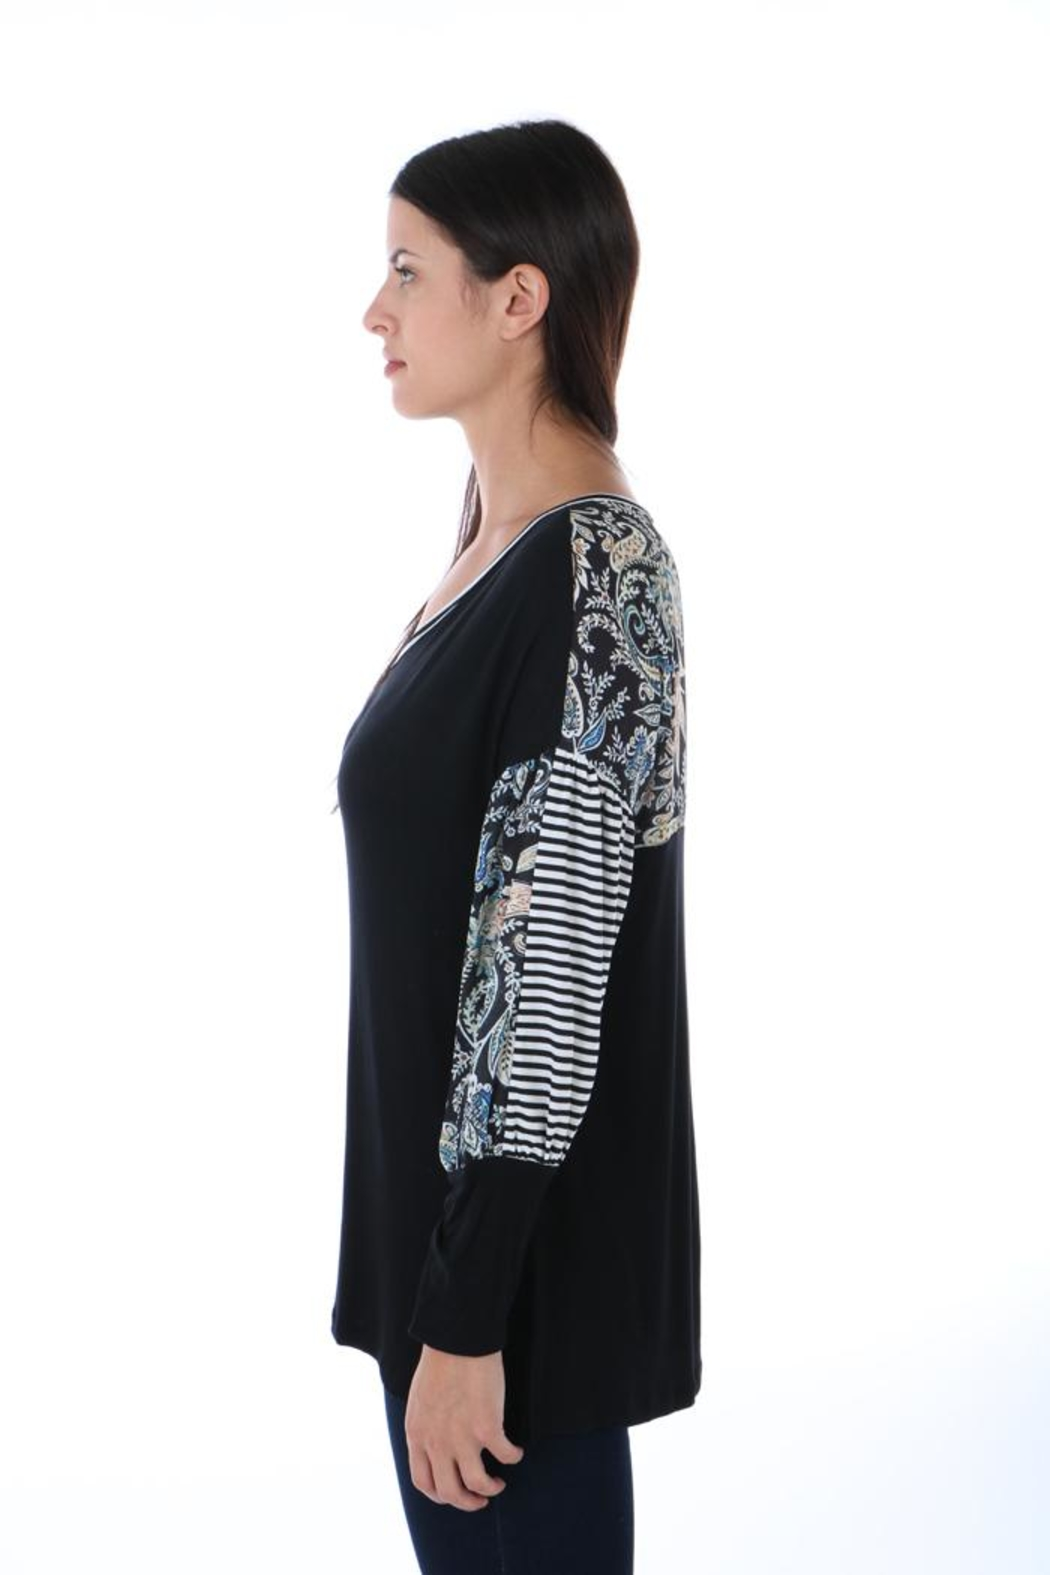 Fine Line Imports Mixed Print Top - Front Full Image